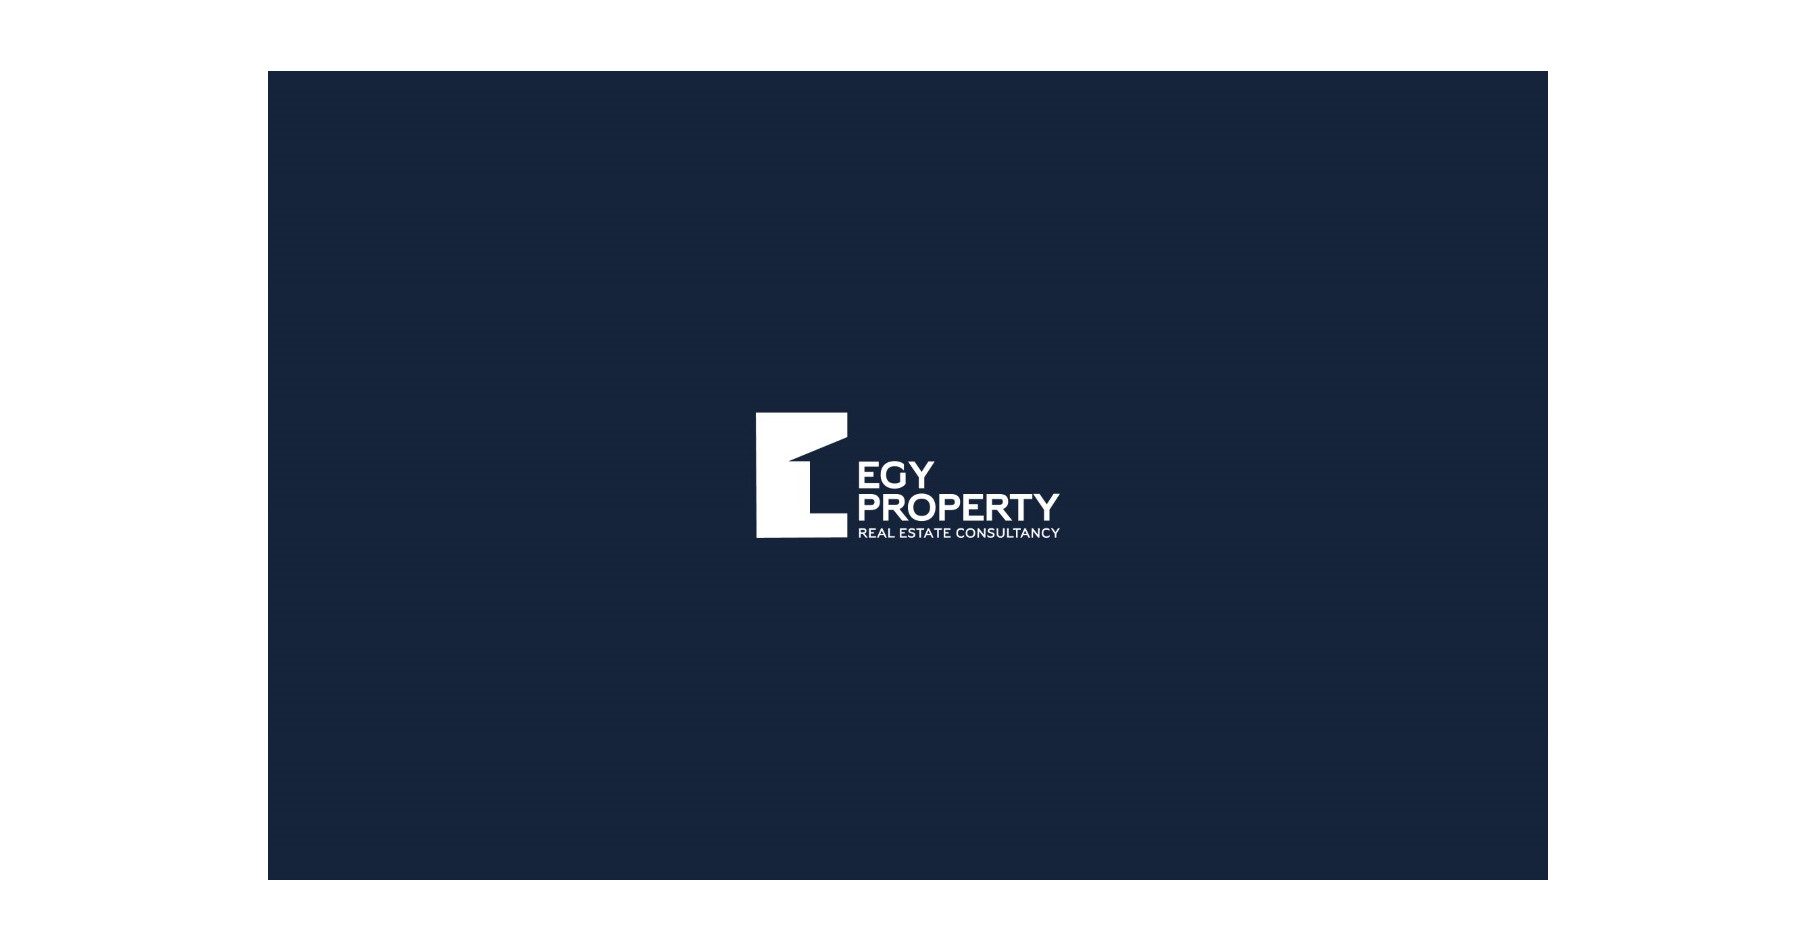 صورة Job: Junior Property Consultant – Sales Real Estate at Egy Property in Cairo, Egypt